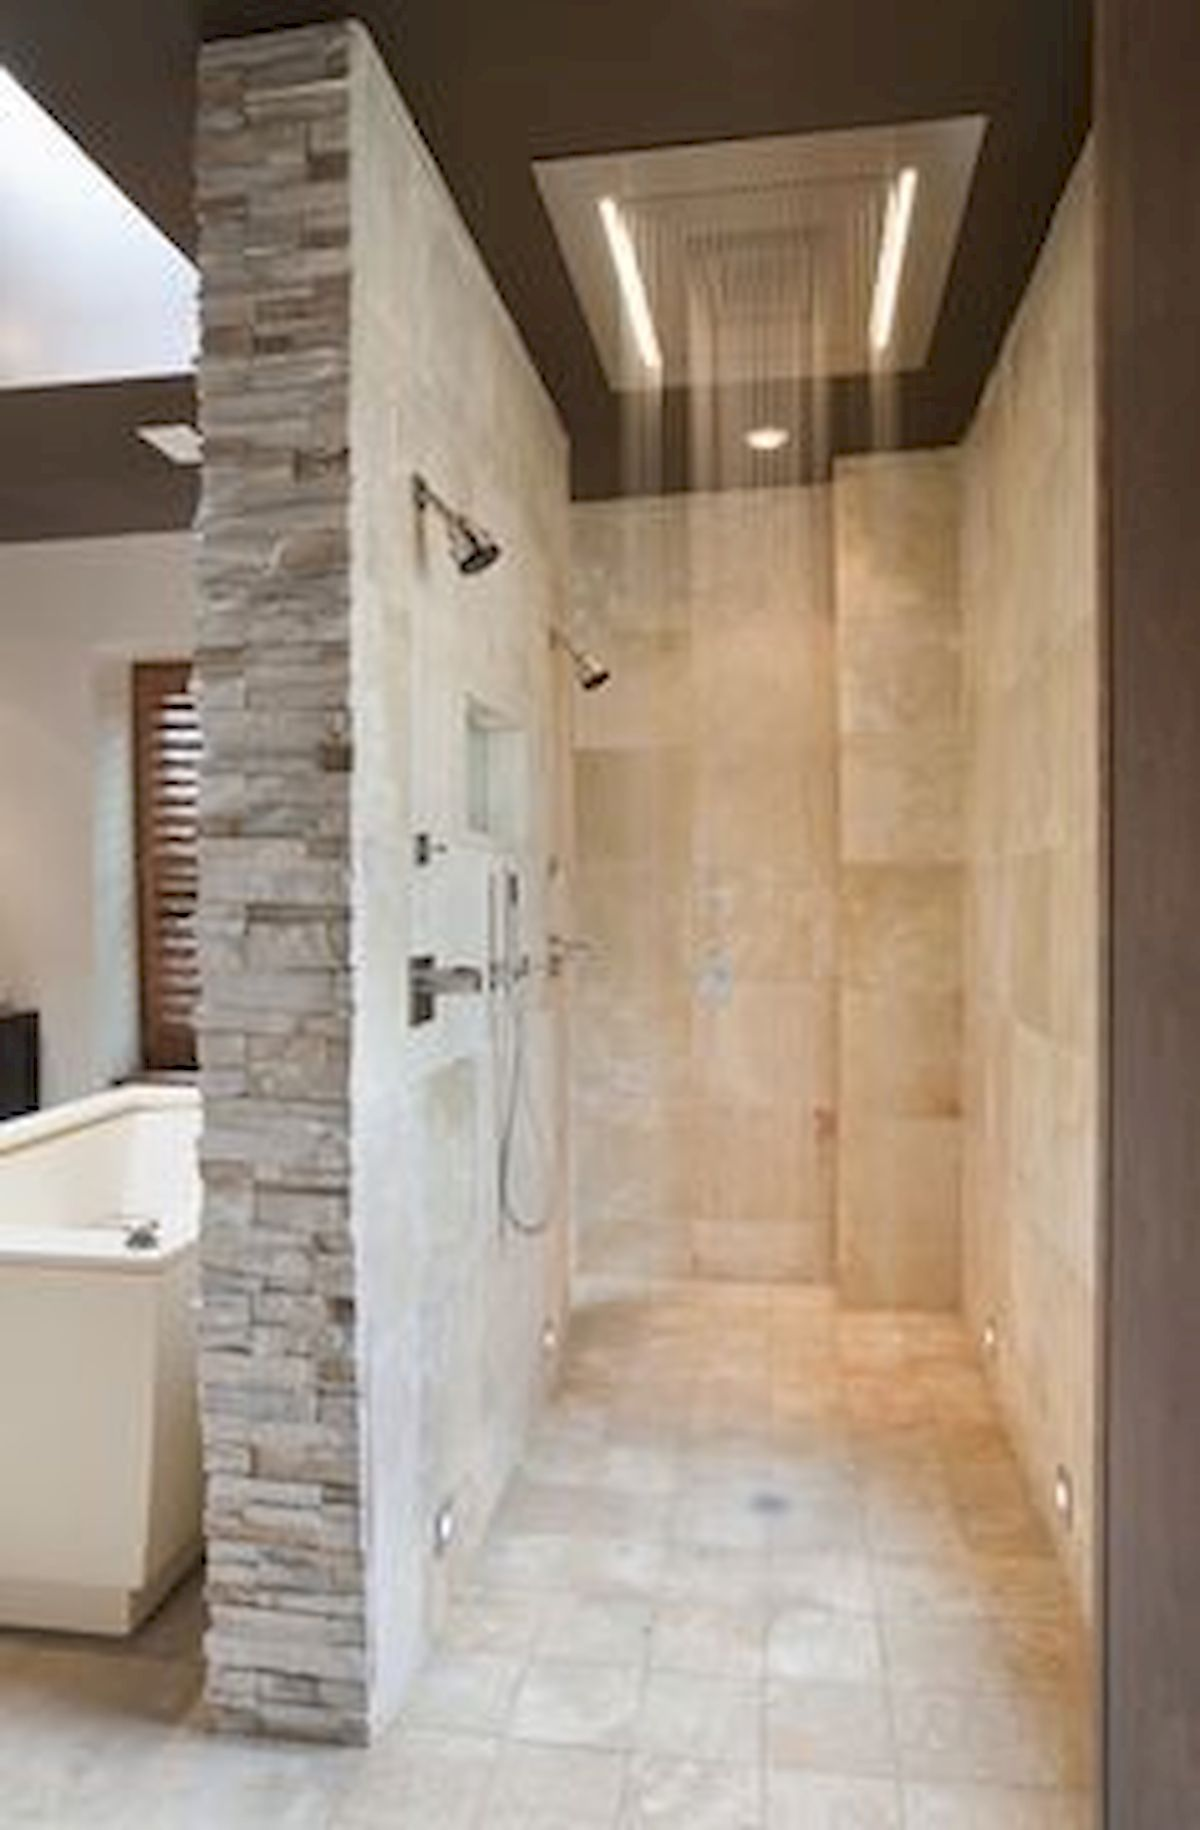 46 Fantastic Walk In Shower No Door for Bathroom Ideas (44 ...